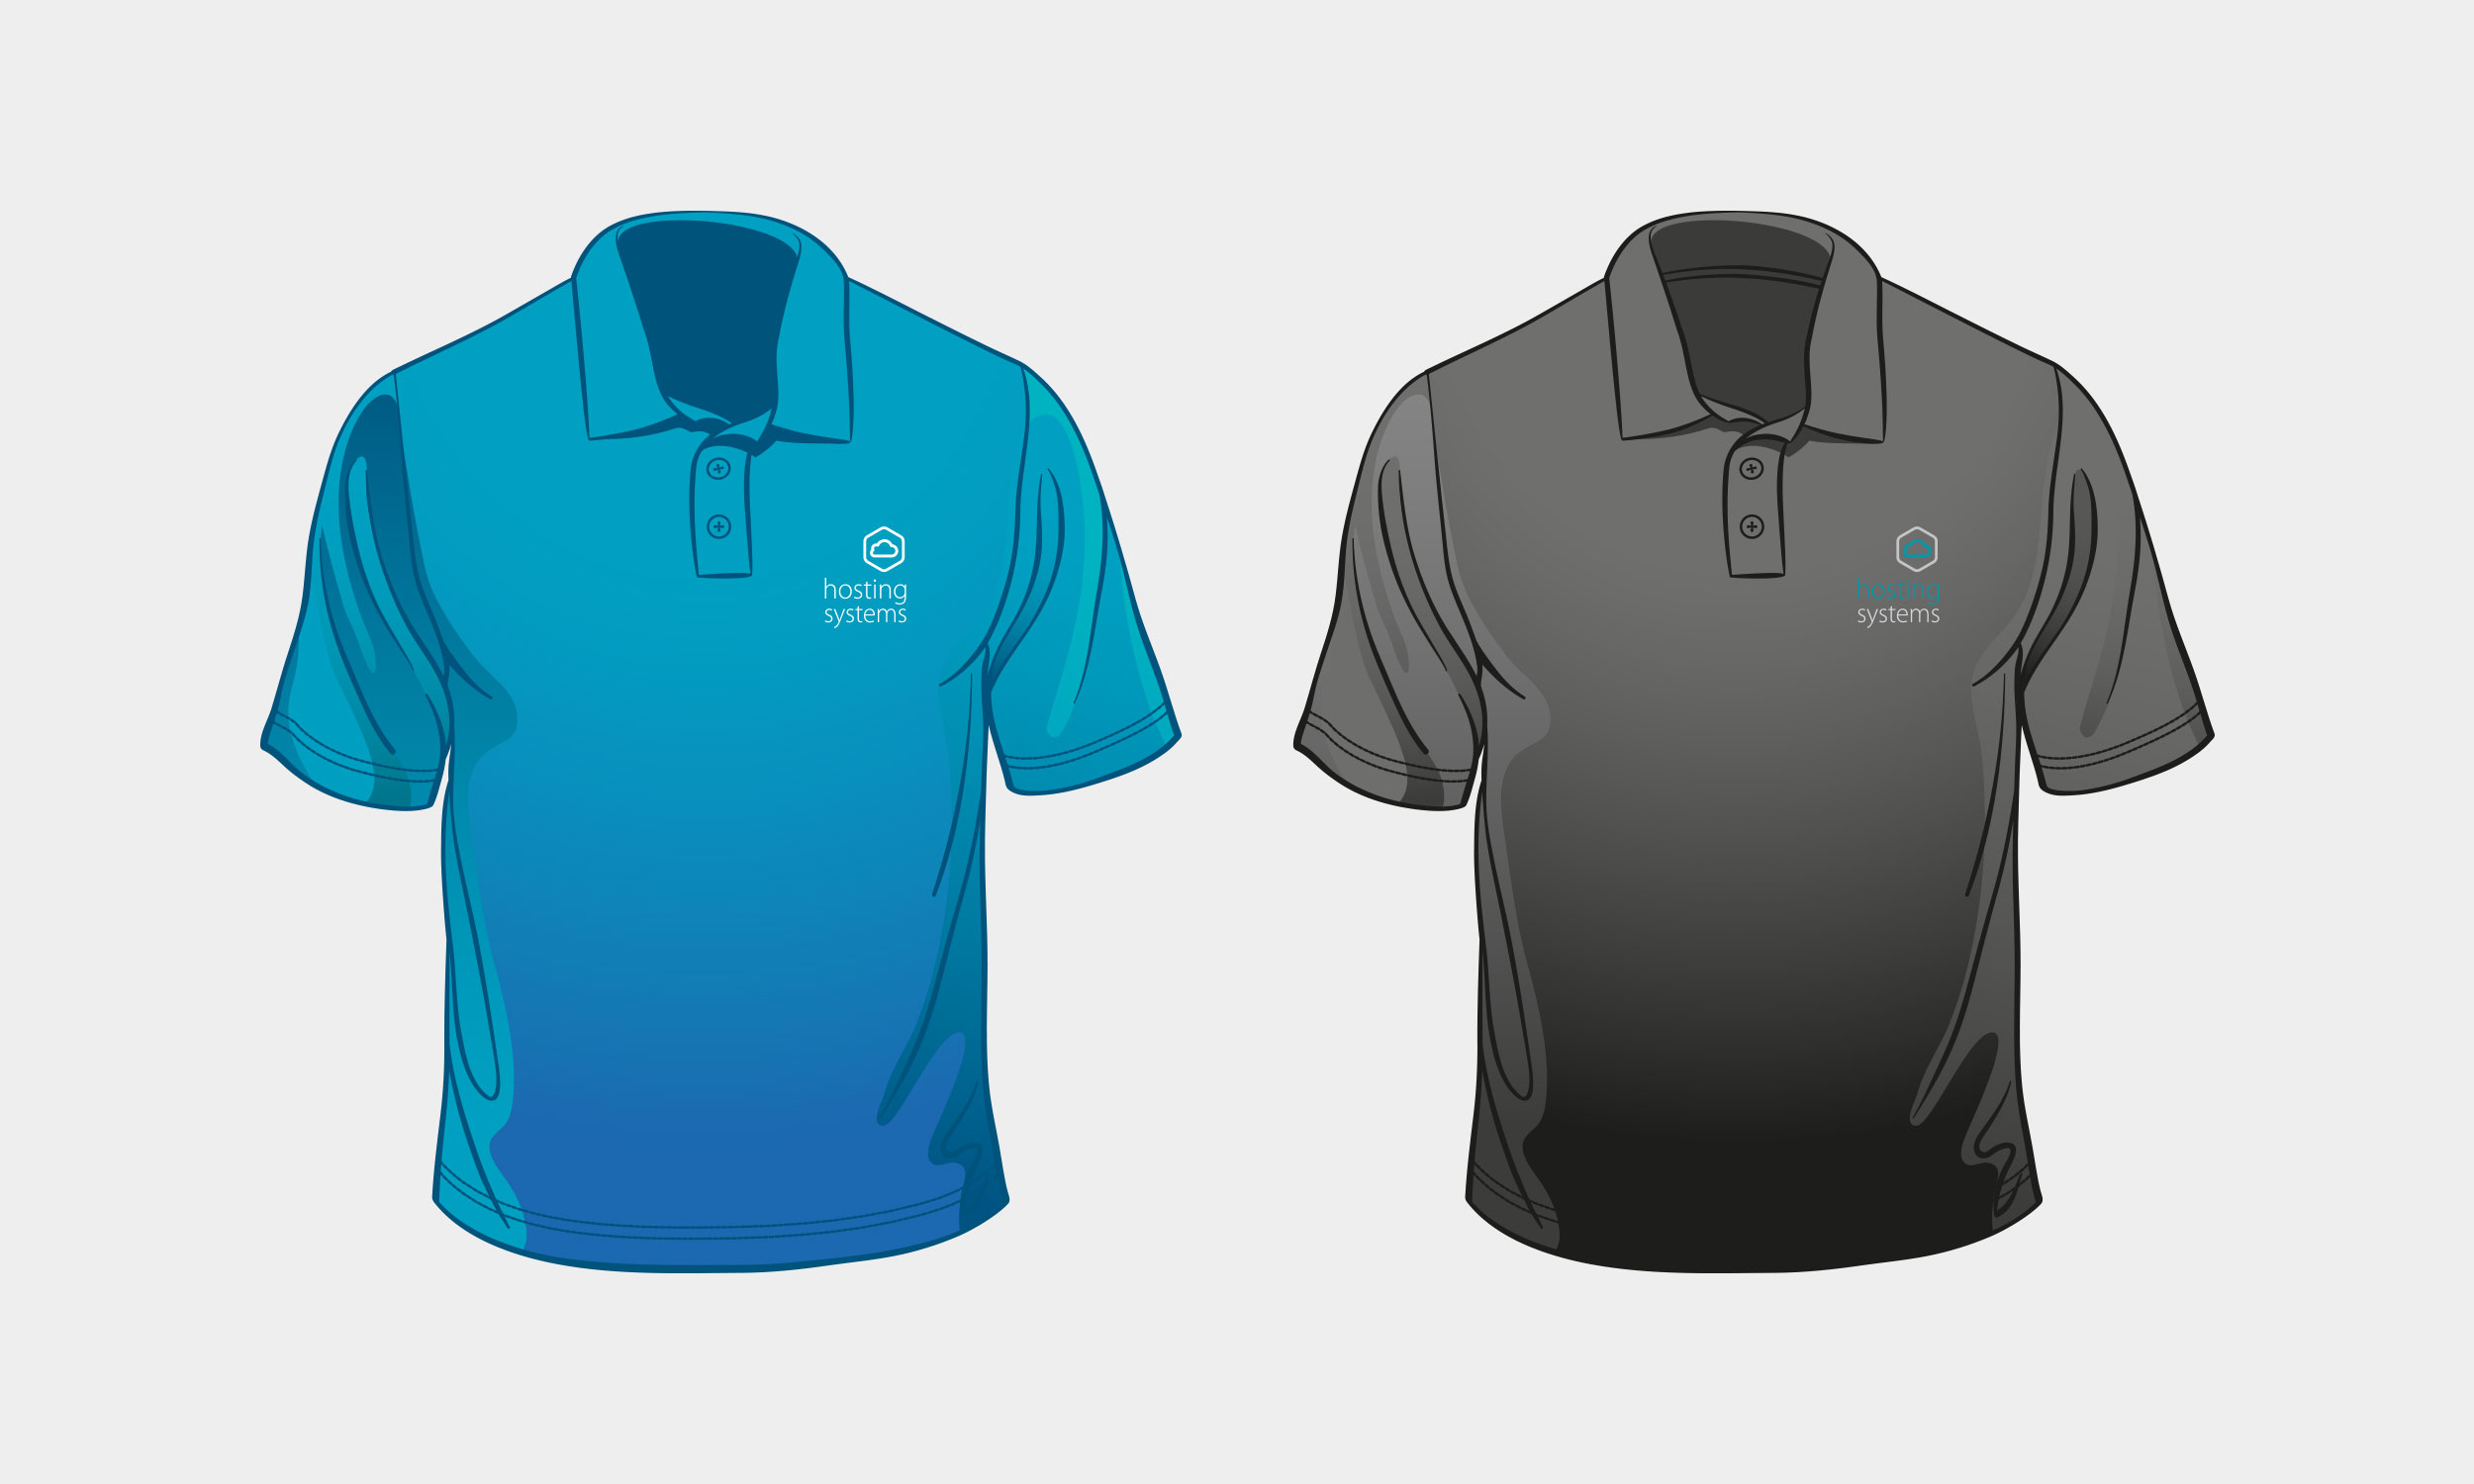 Hosting Systems Polo Shirts